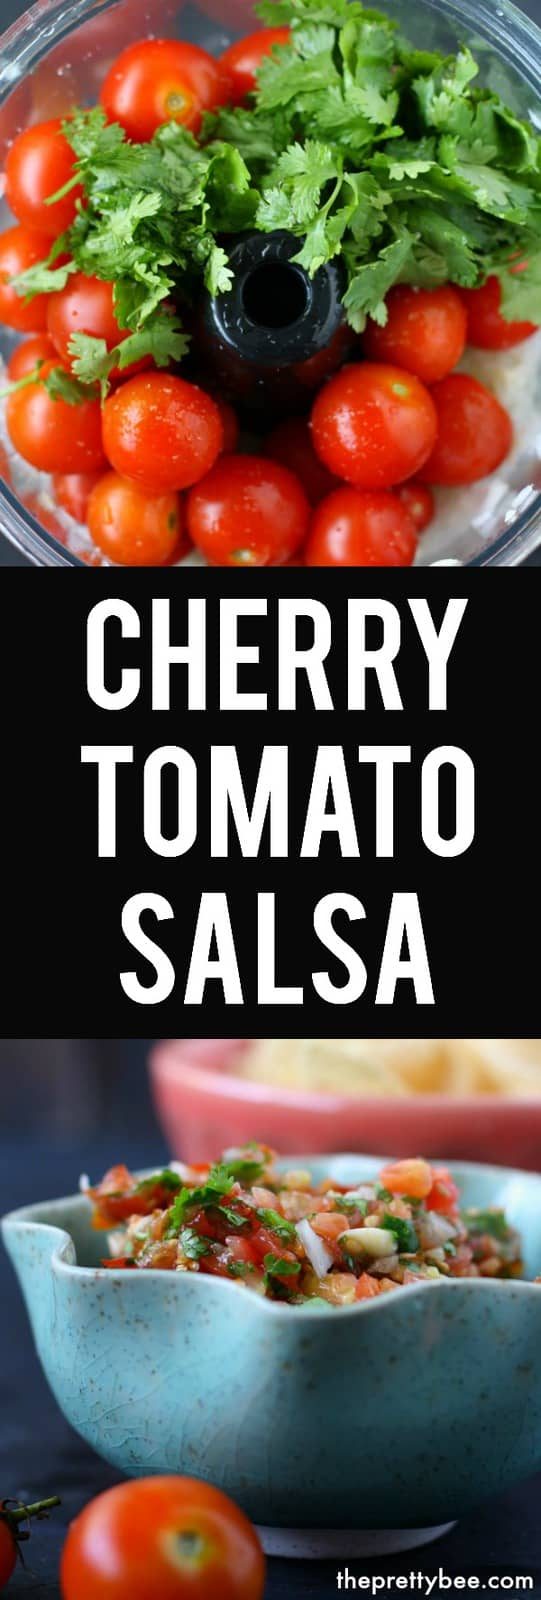 This easy cherry tomato salsa is the perfect way to use up your garden tomatoes! This is perfect over chips or tacos. #dairyfree #glutenfree #vegan